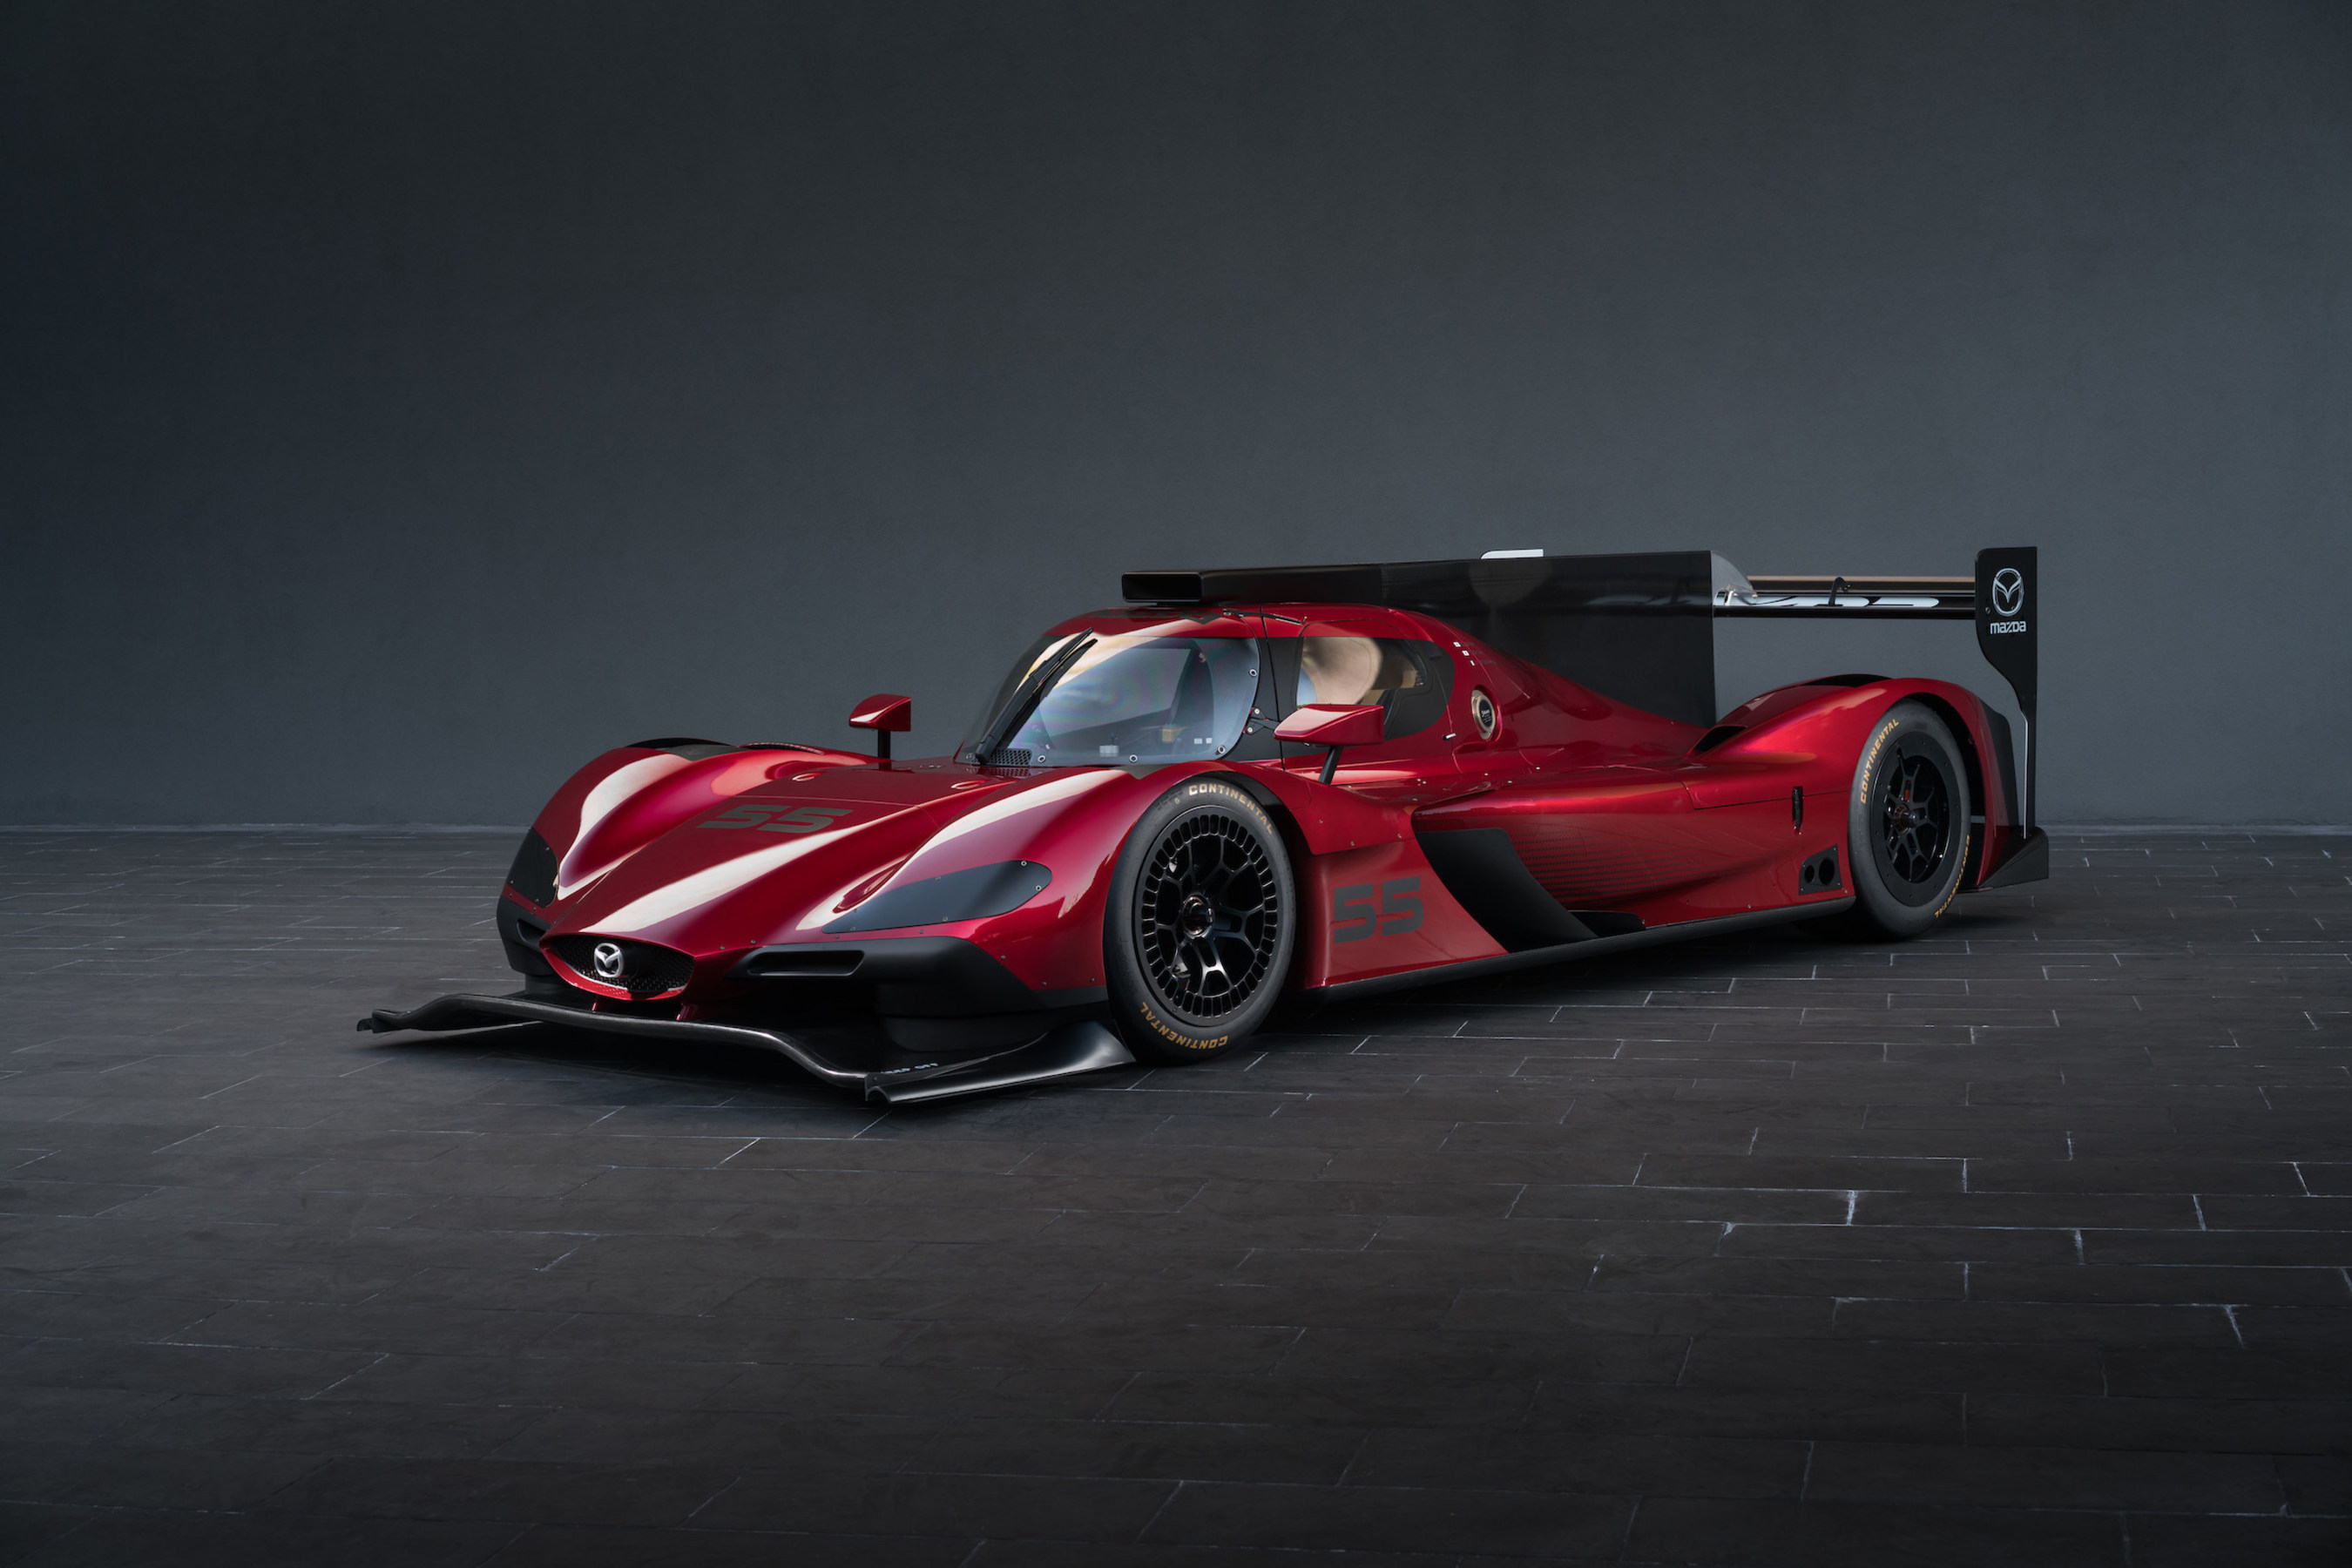 Mazda Unveils New Prototype Race Car at Los Angeles Auto Show